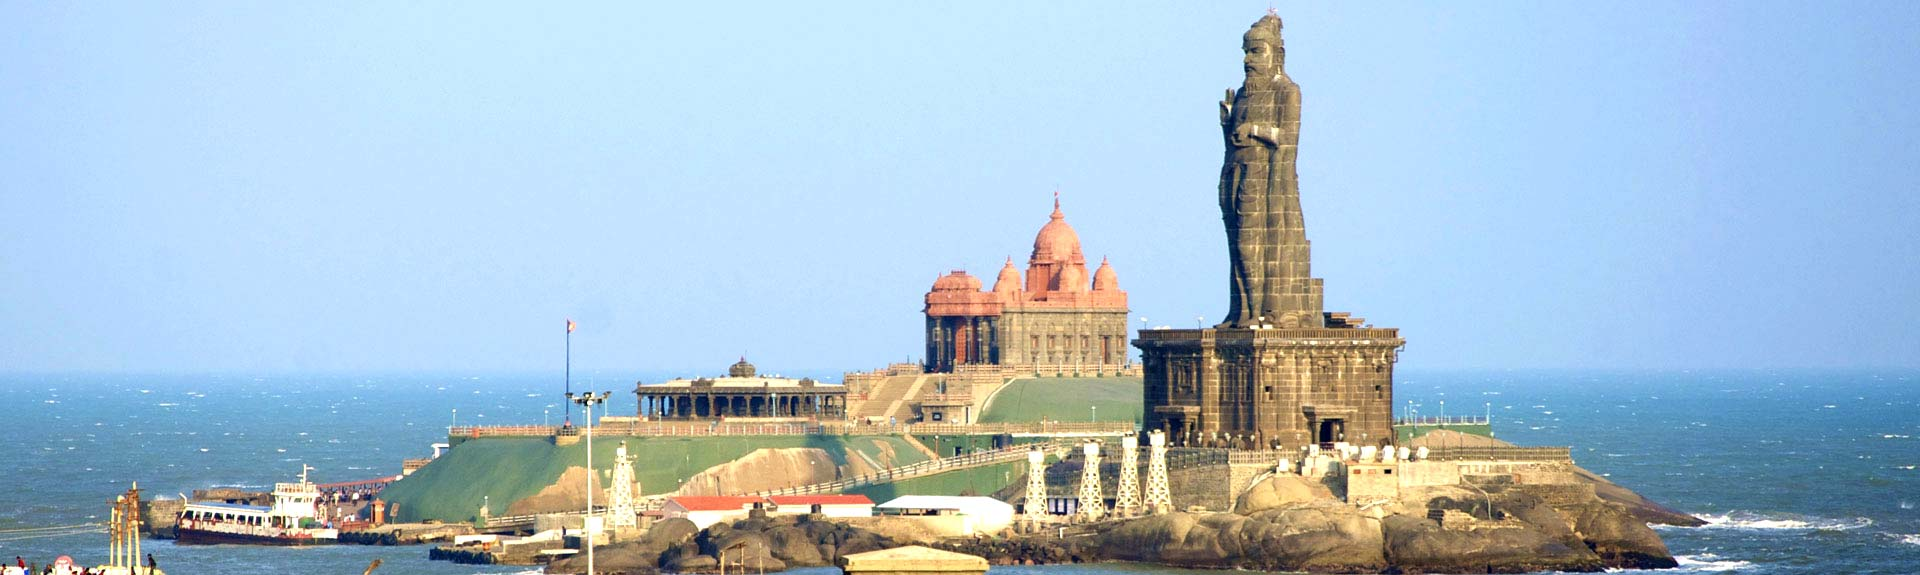 tamil-nadu_kanyakumari_thiruvalluvar-statue-at-kanyakumari,Kerala tour packages , Kerala honeymoon packages, Holiday packages in Kerala